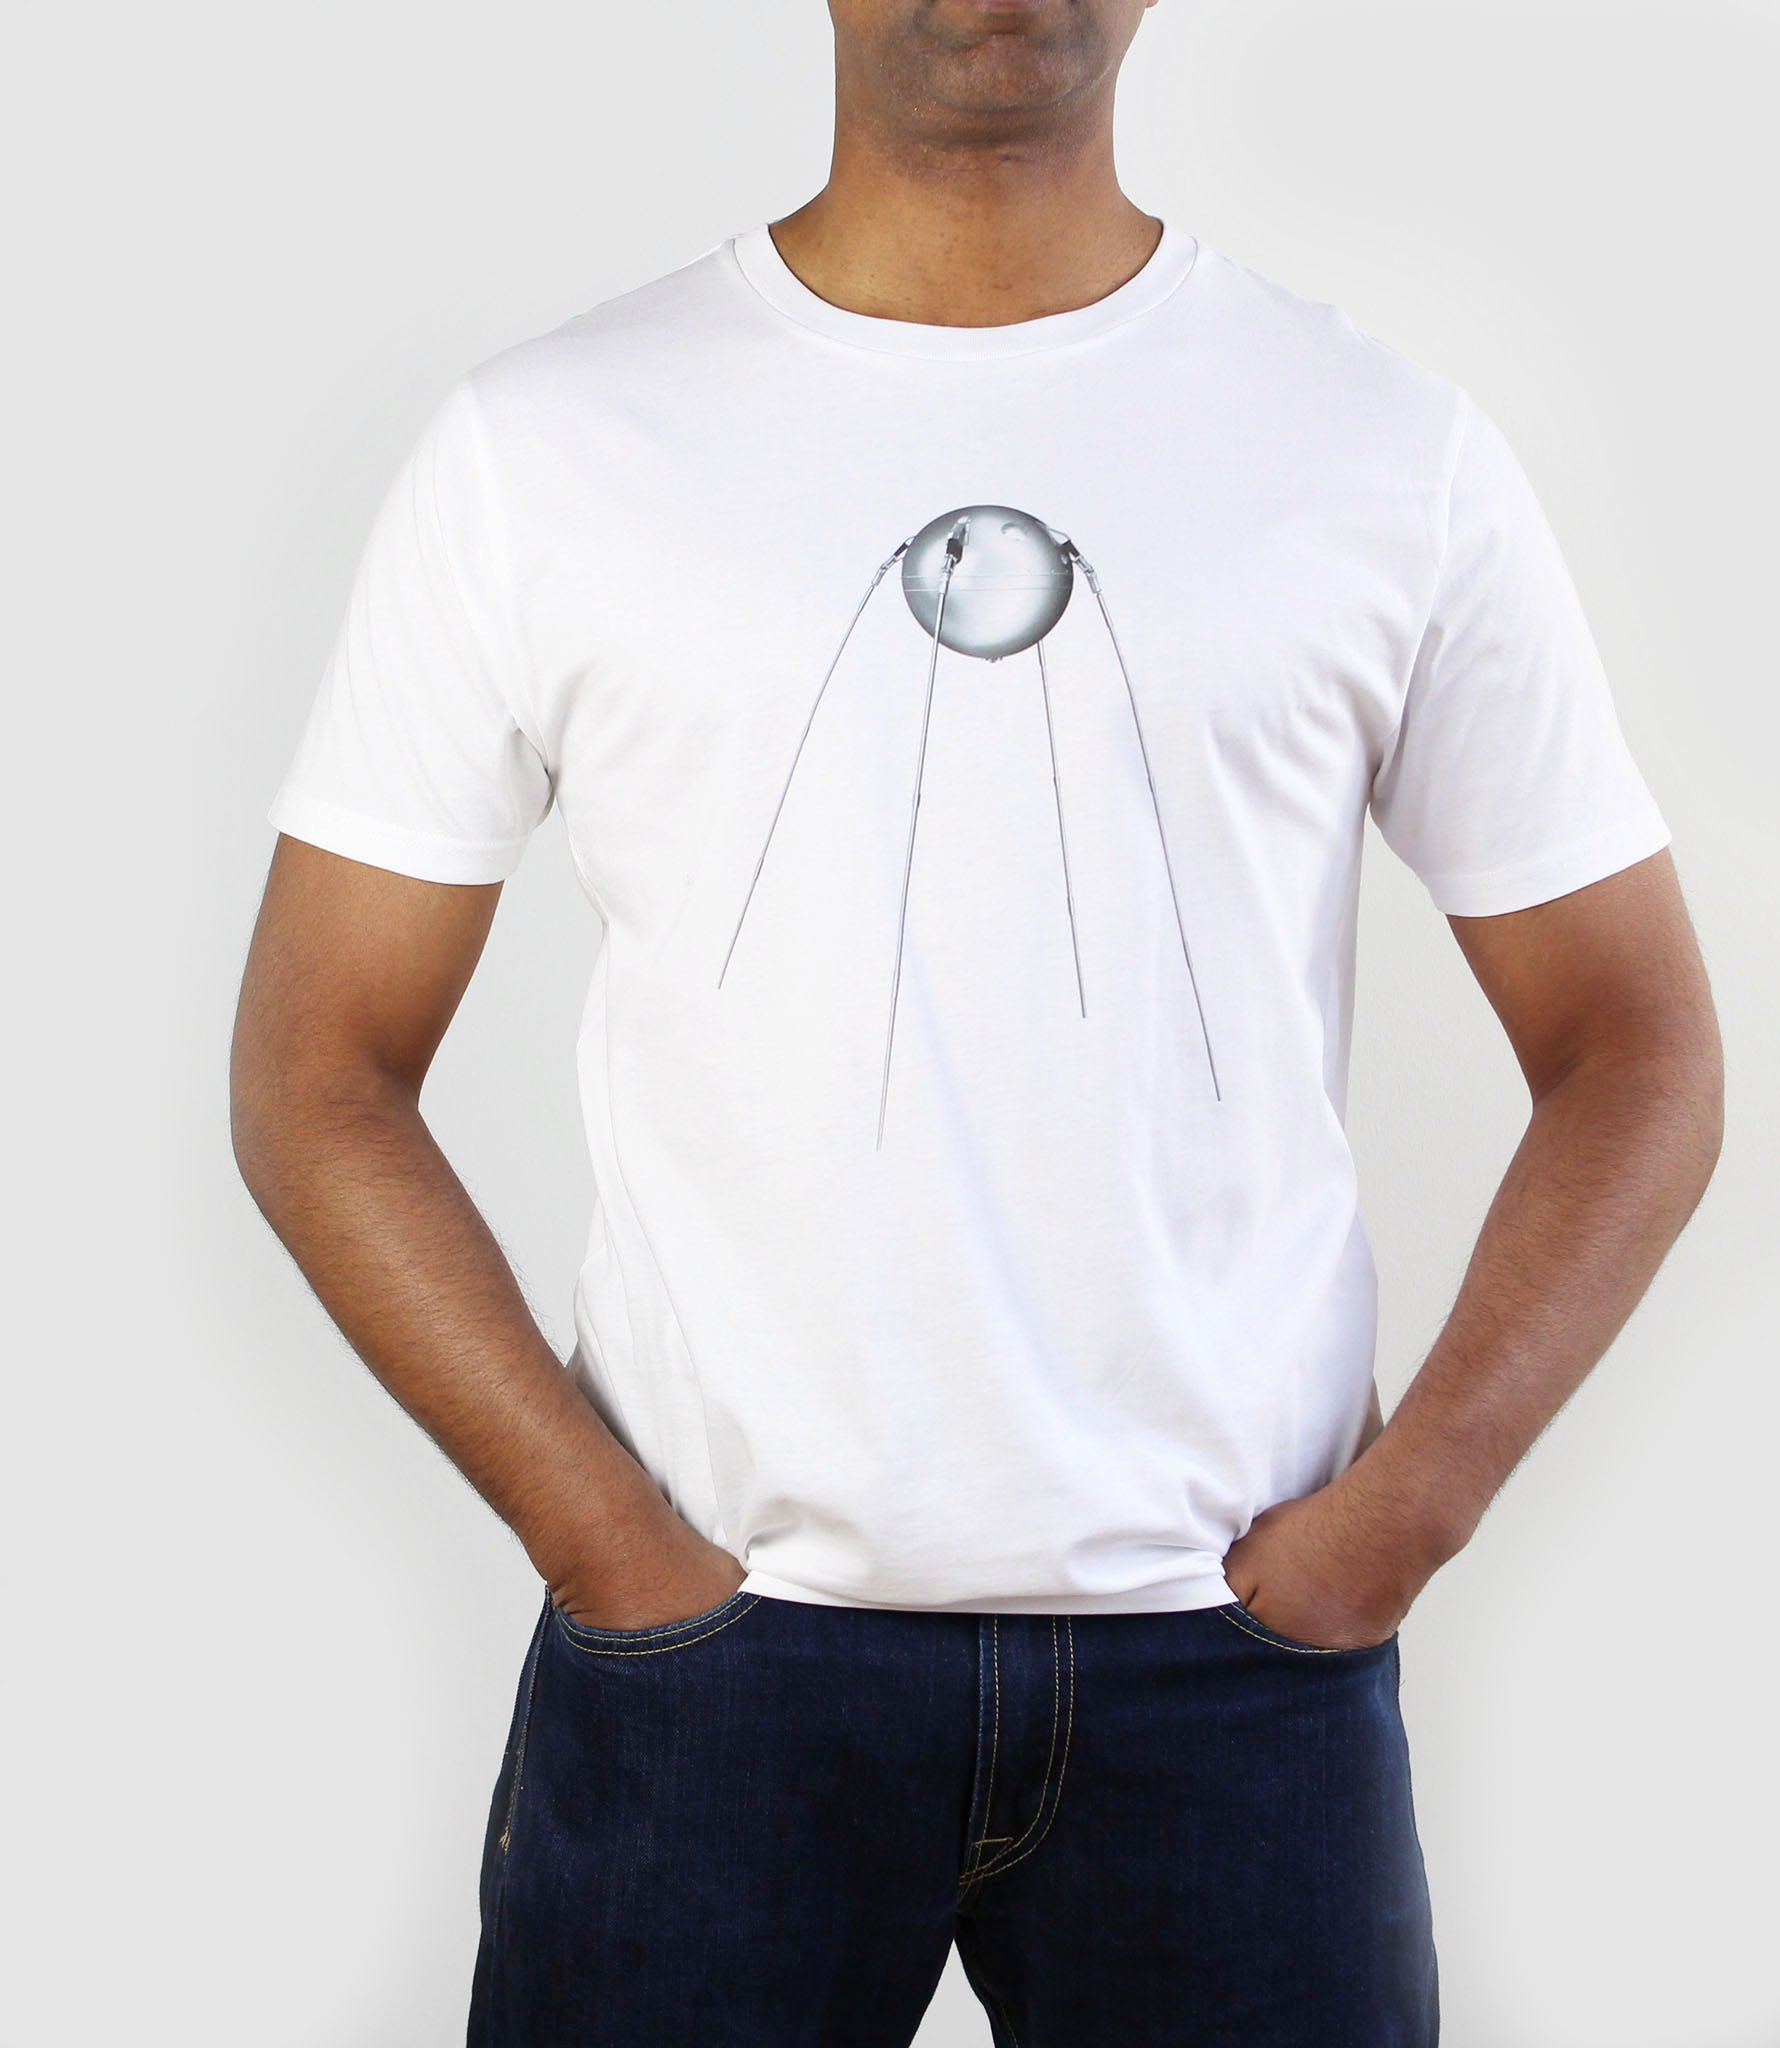 Sputnik 1 Organic Cotton T-Shirt White